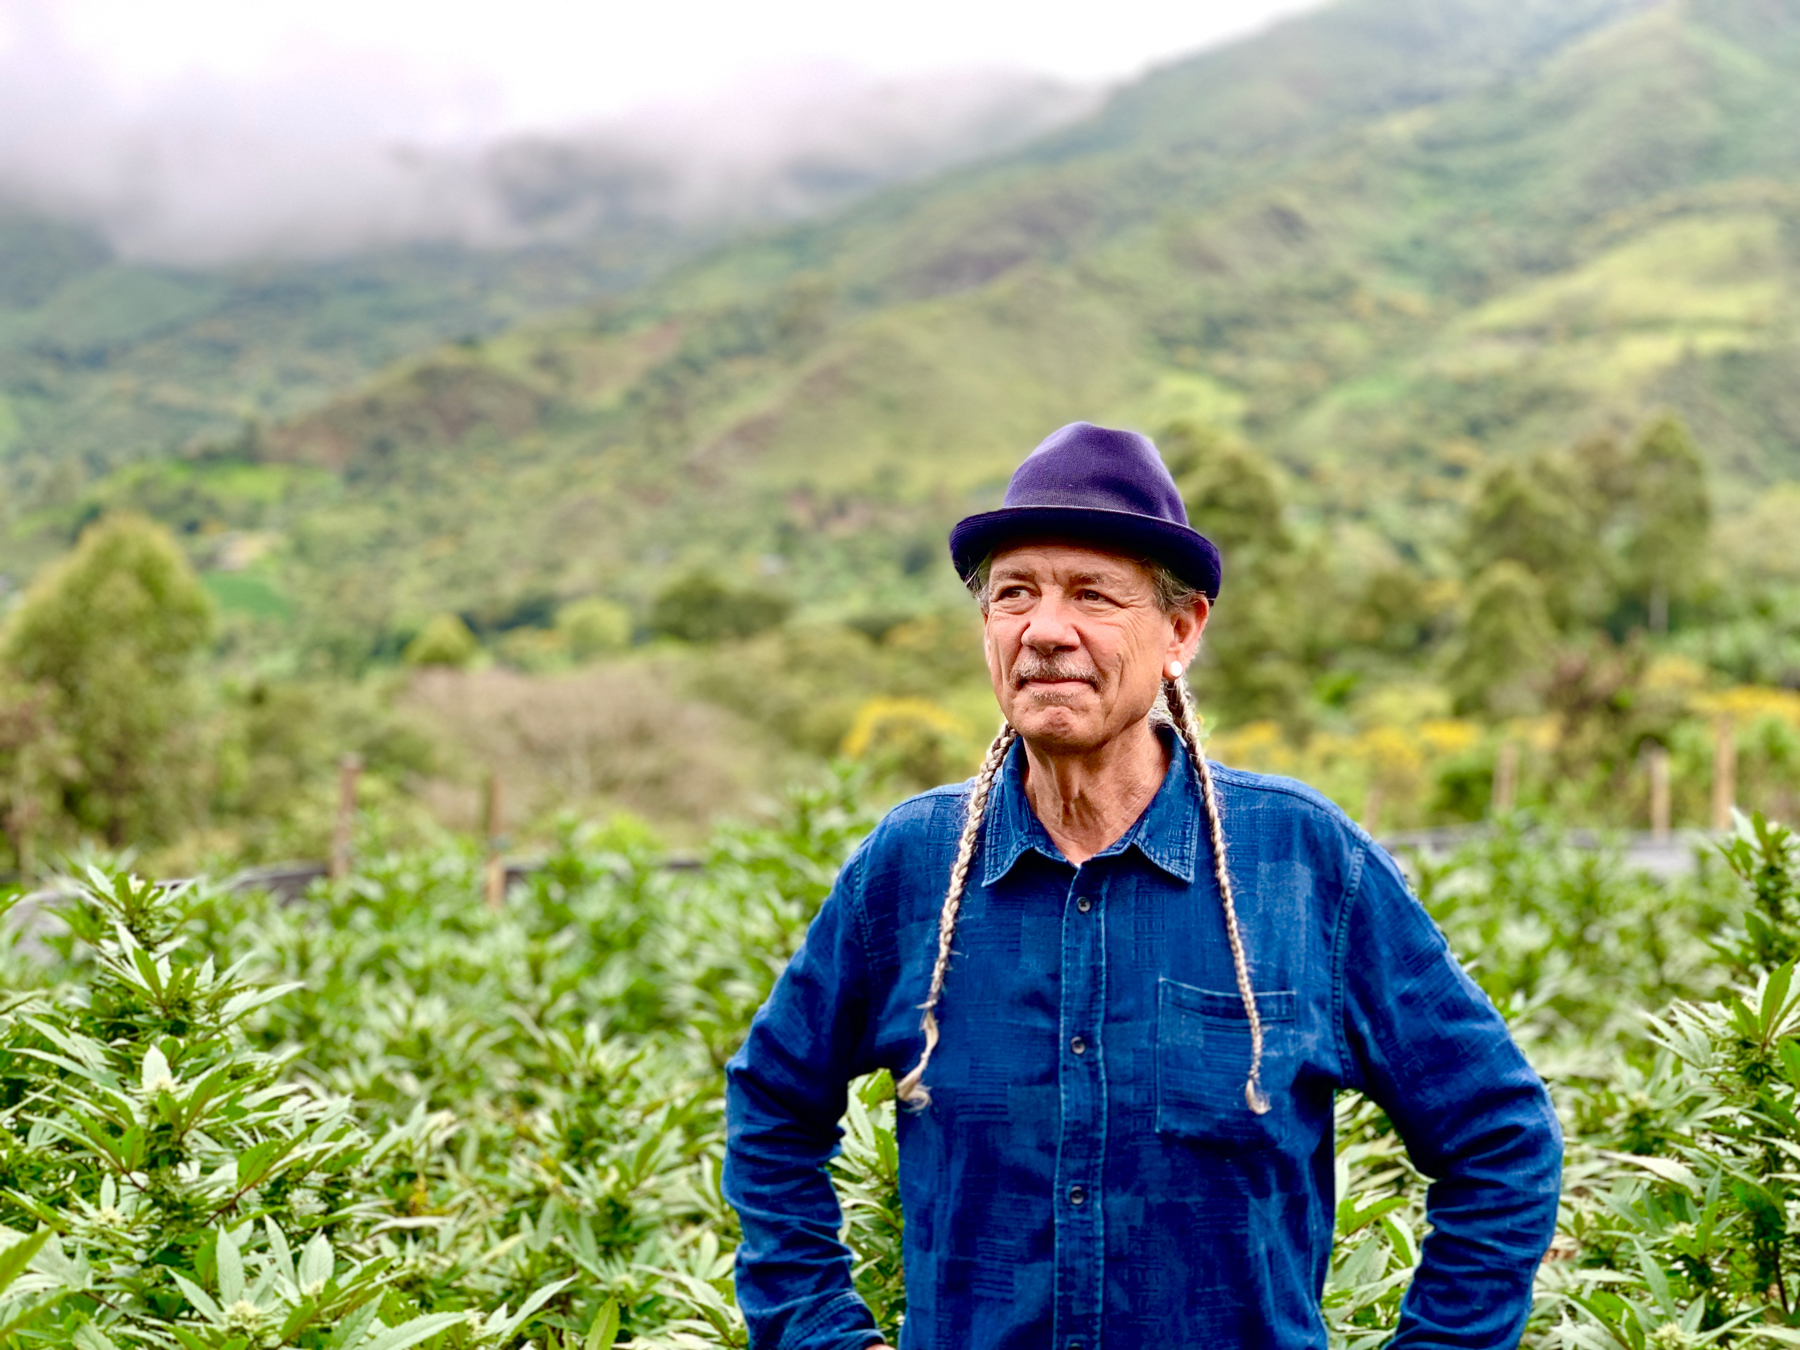 Steve DeAngelo, the 'Father of Legal Cannabis,' on What's Next for the Movement